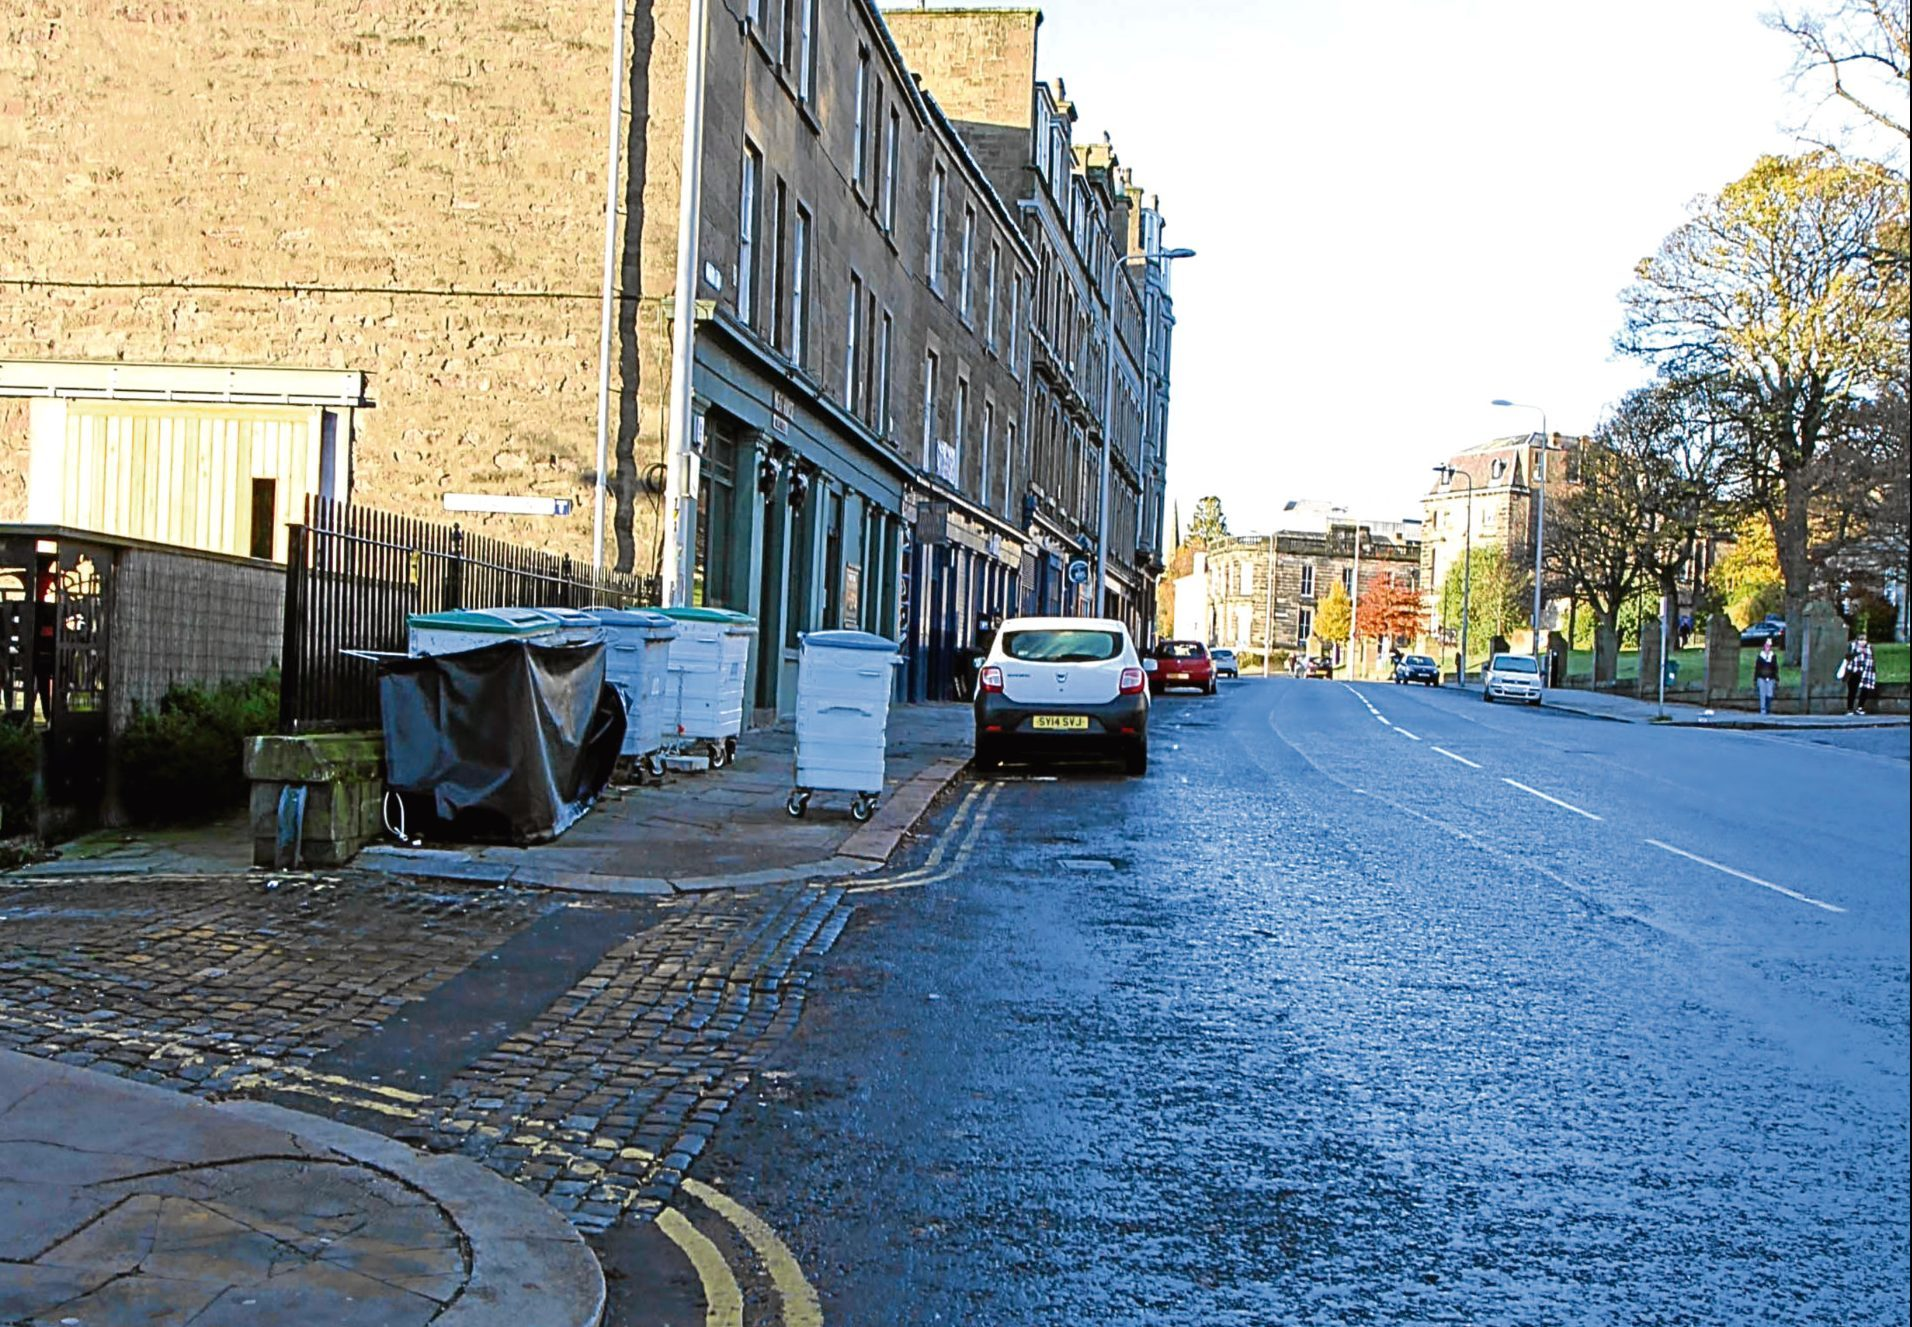 The Perth Road, near Allan's flat.